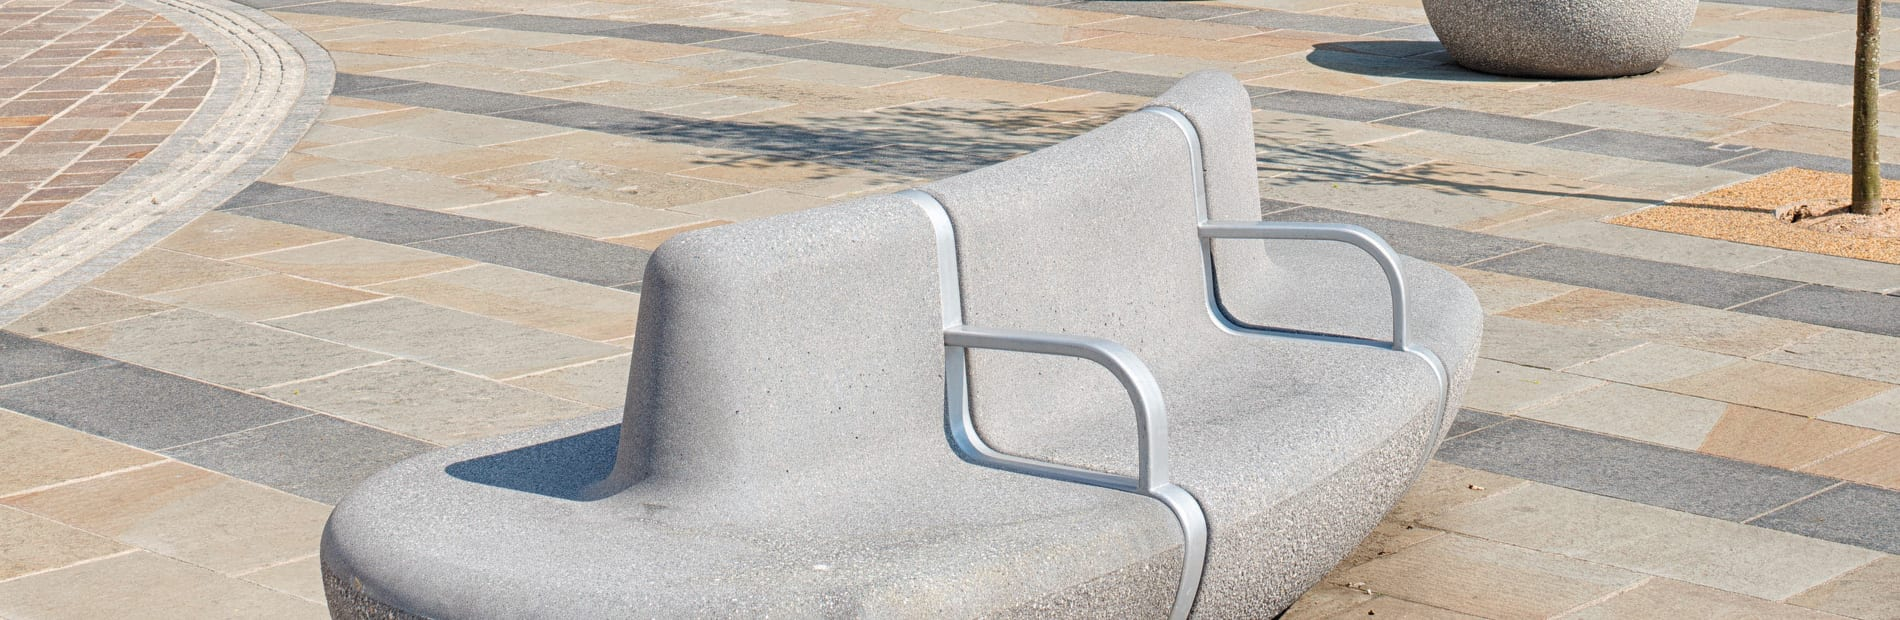 igneo bench and seats